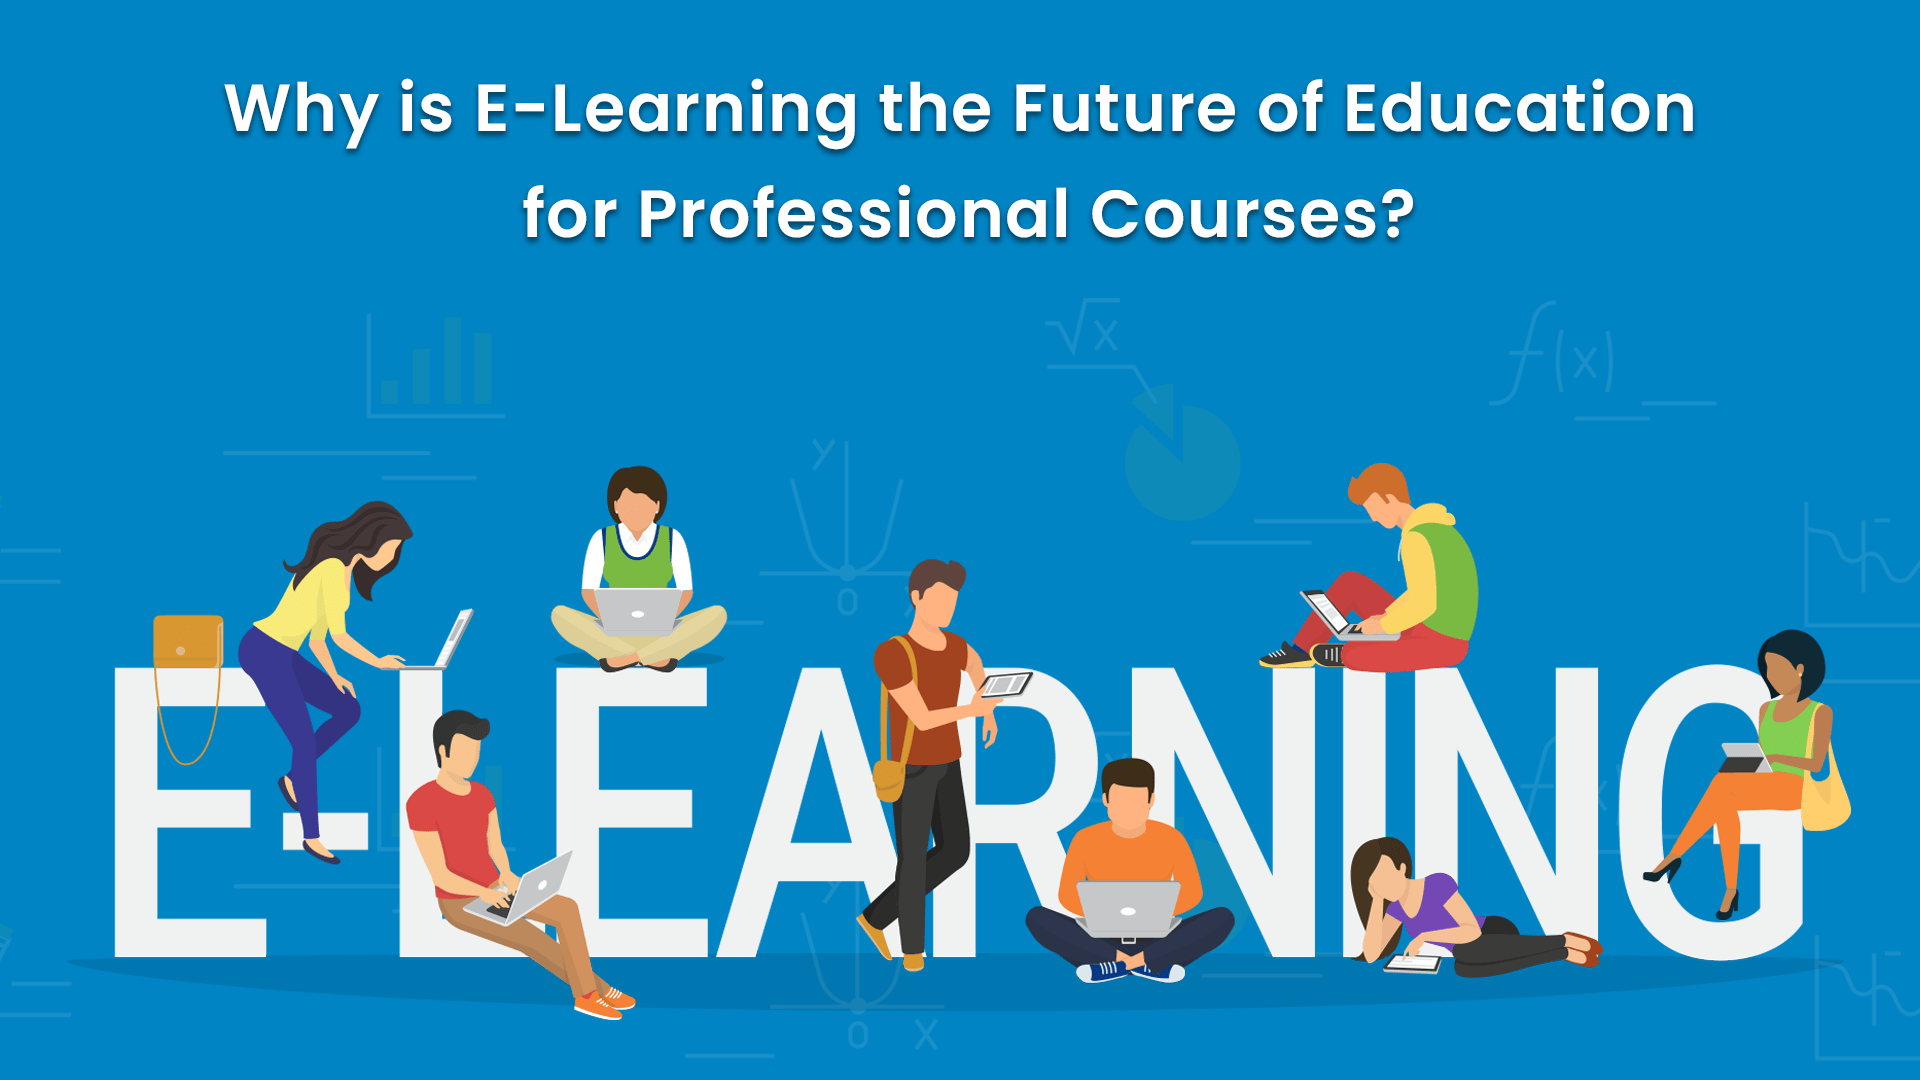 Why is e-Learning the Future of Education for Professional Courses?